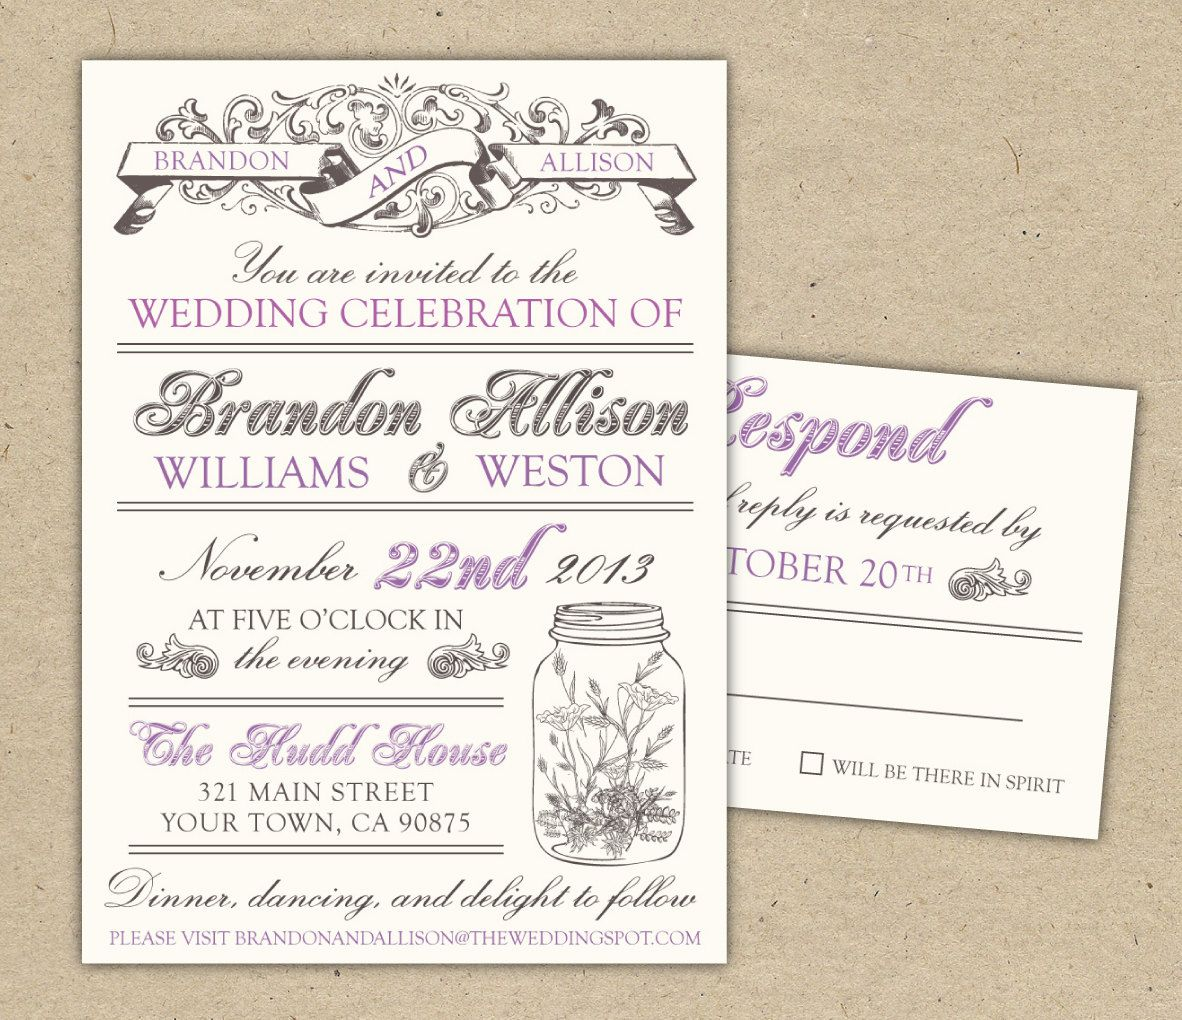 printable invitation templates free download koni polycode co